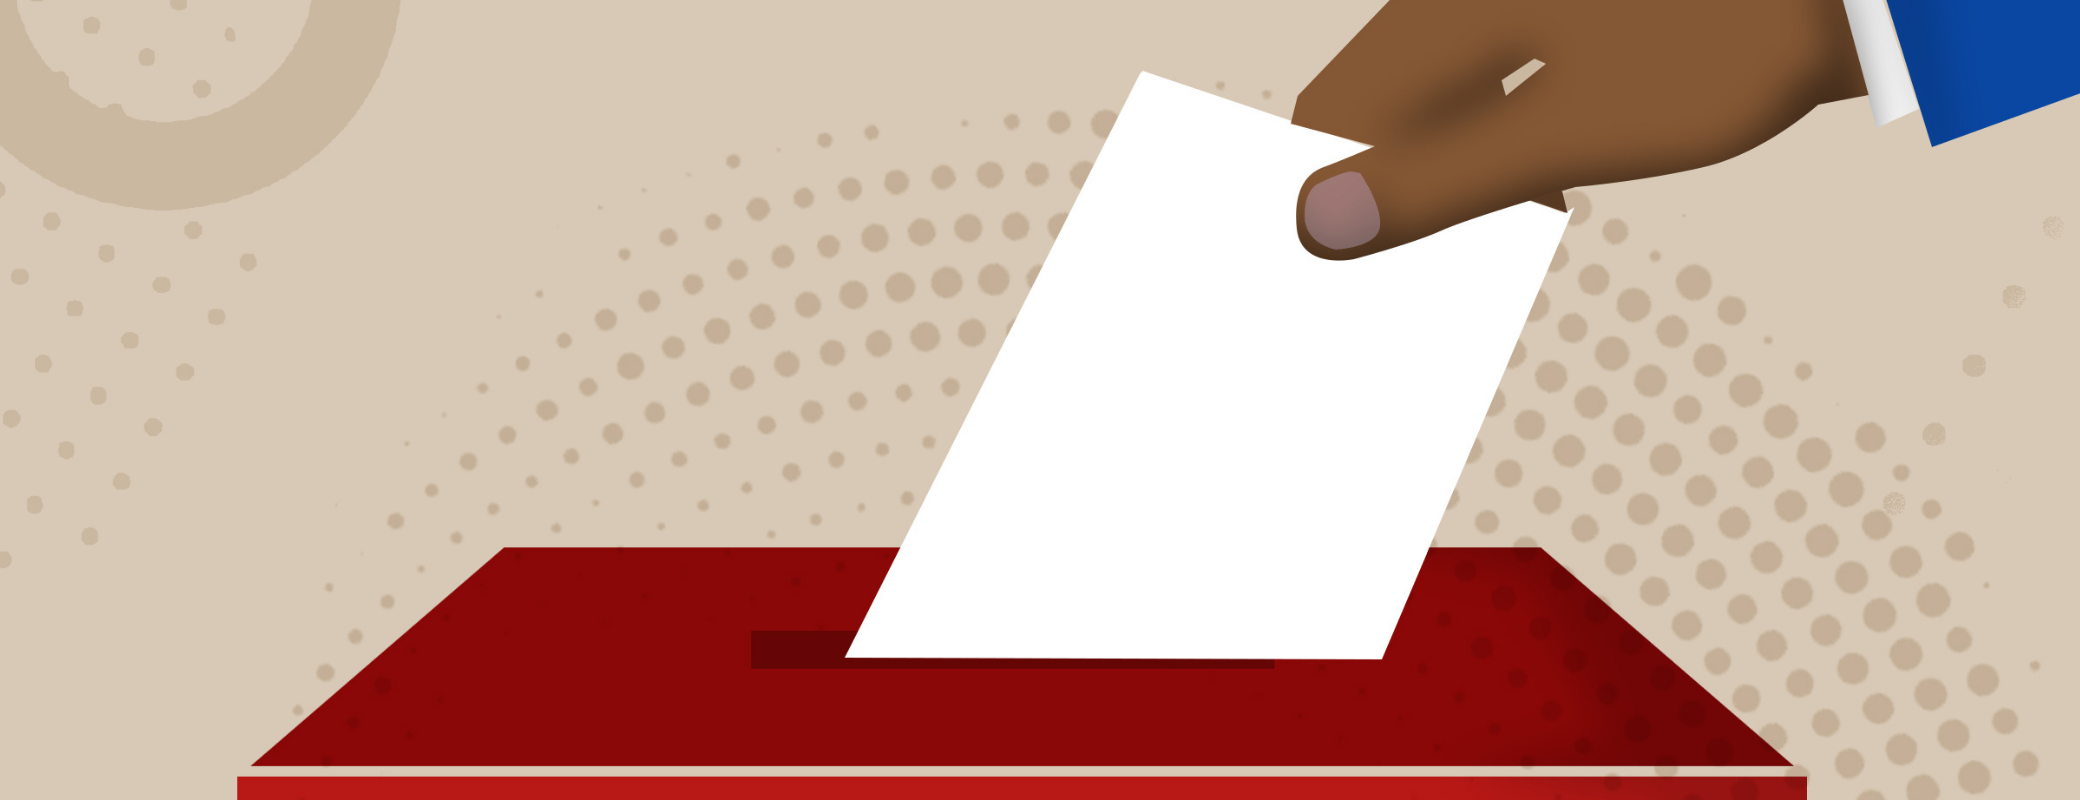 """""""It's about having a seat at the table"""": why Mete Coban wants you to register to vote on National Voter Registration Day"""